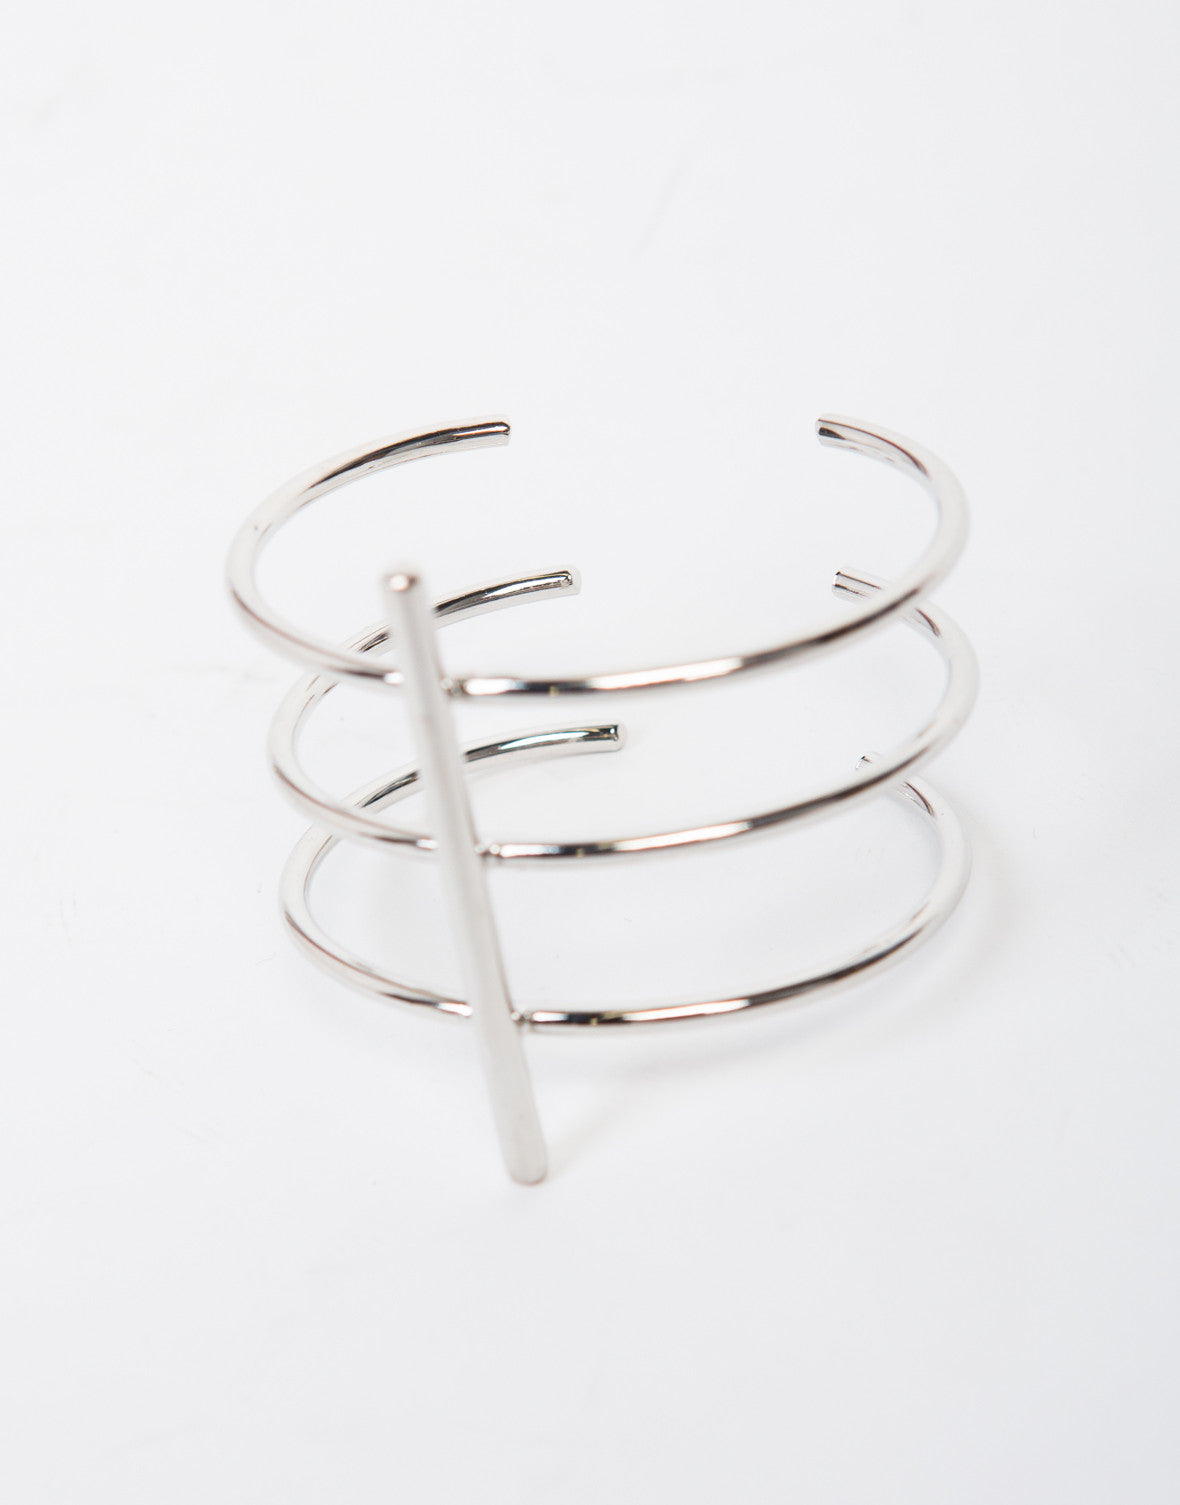 Triple Barred Cuff